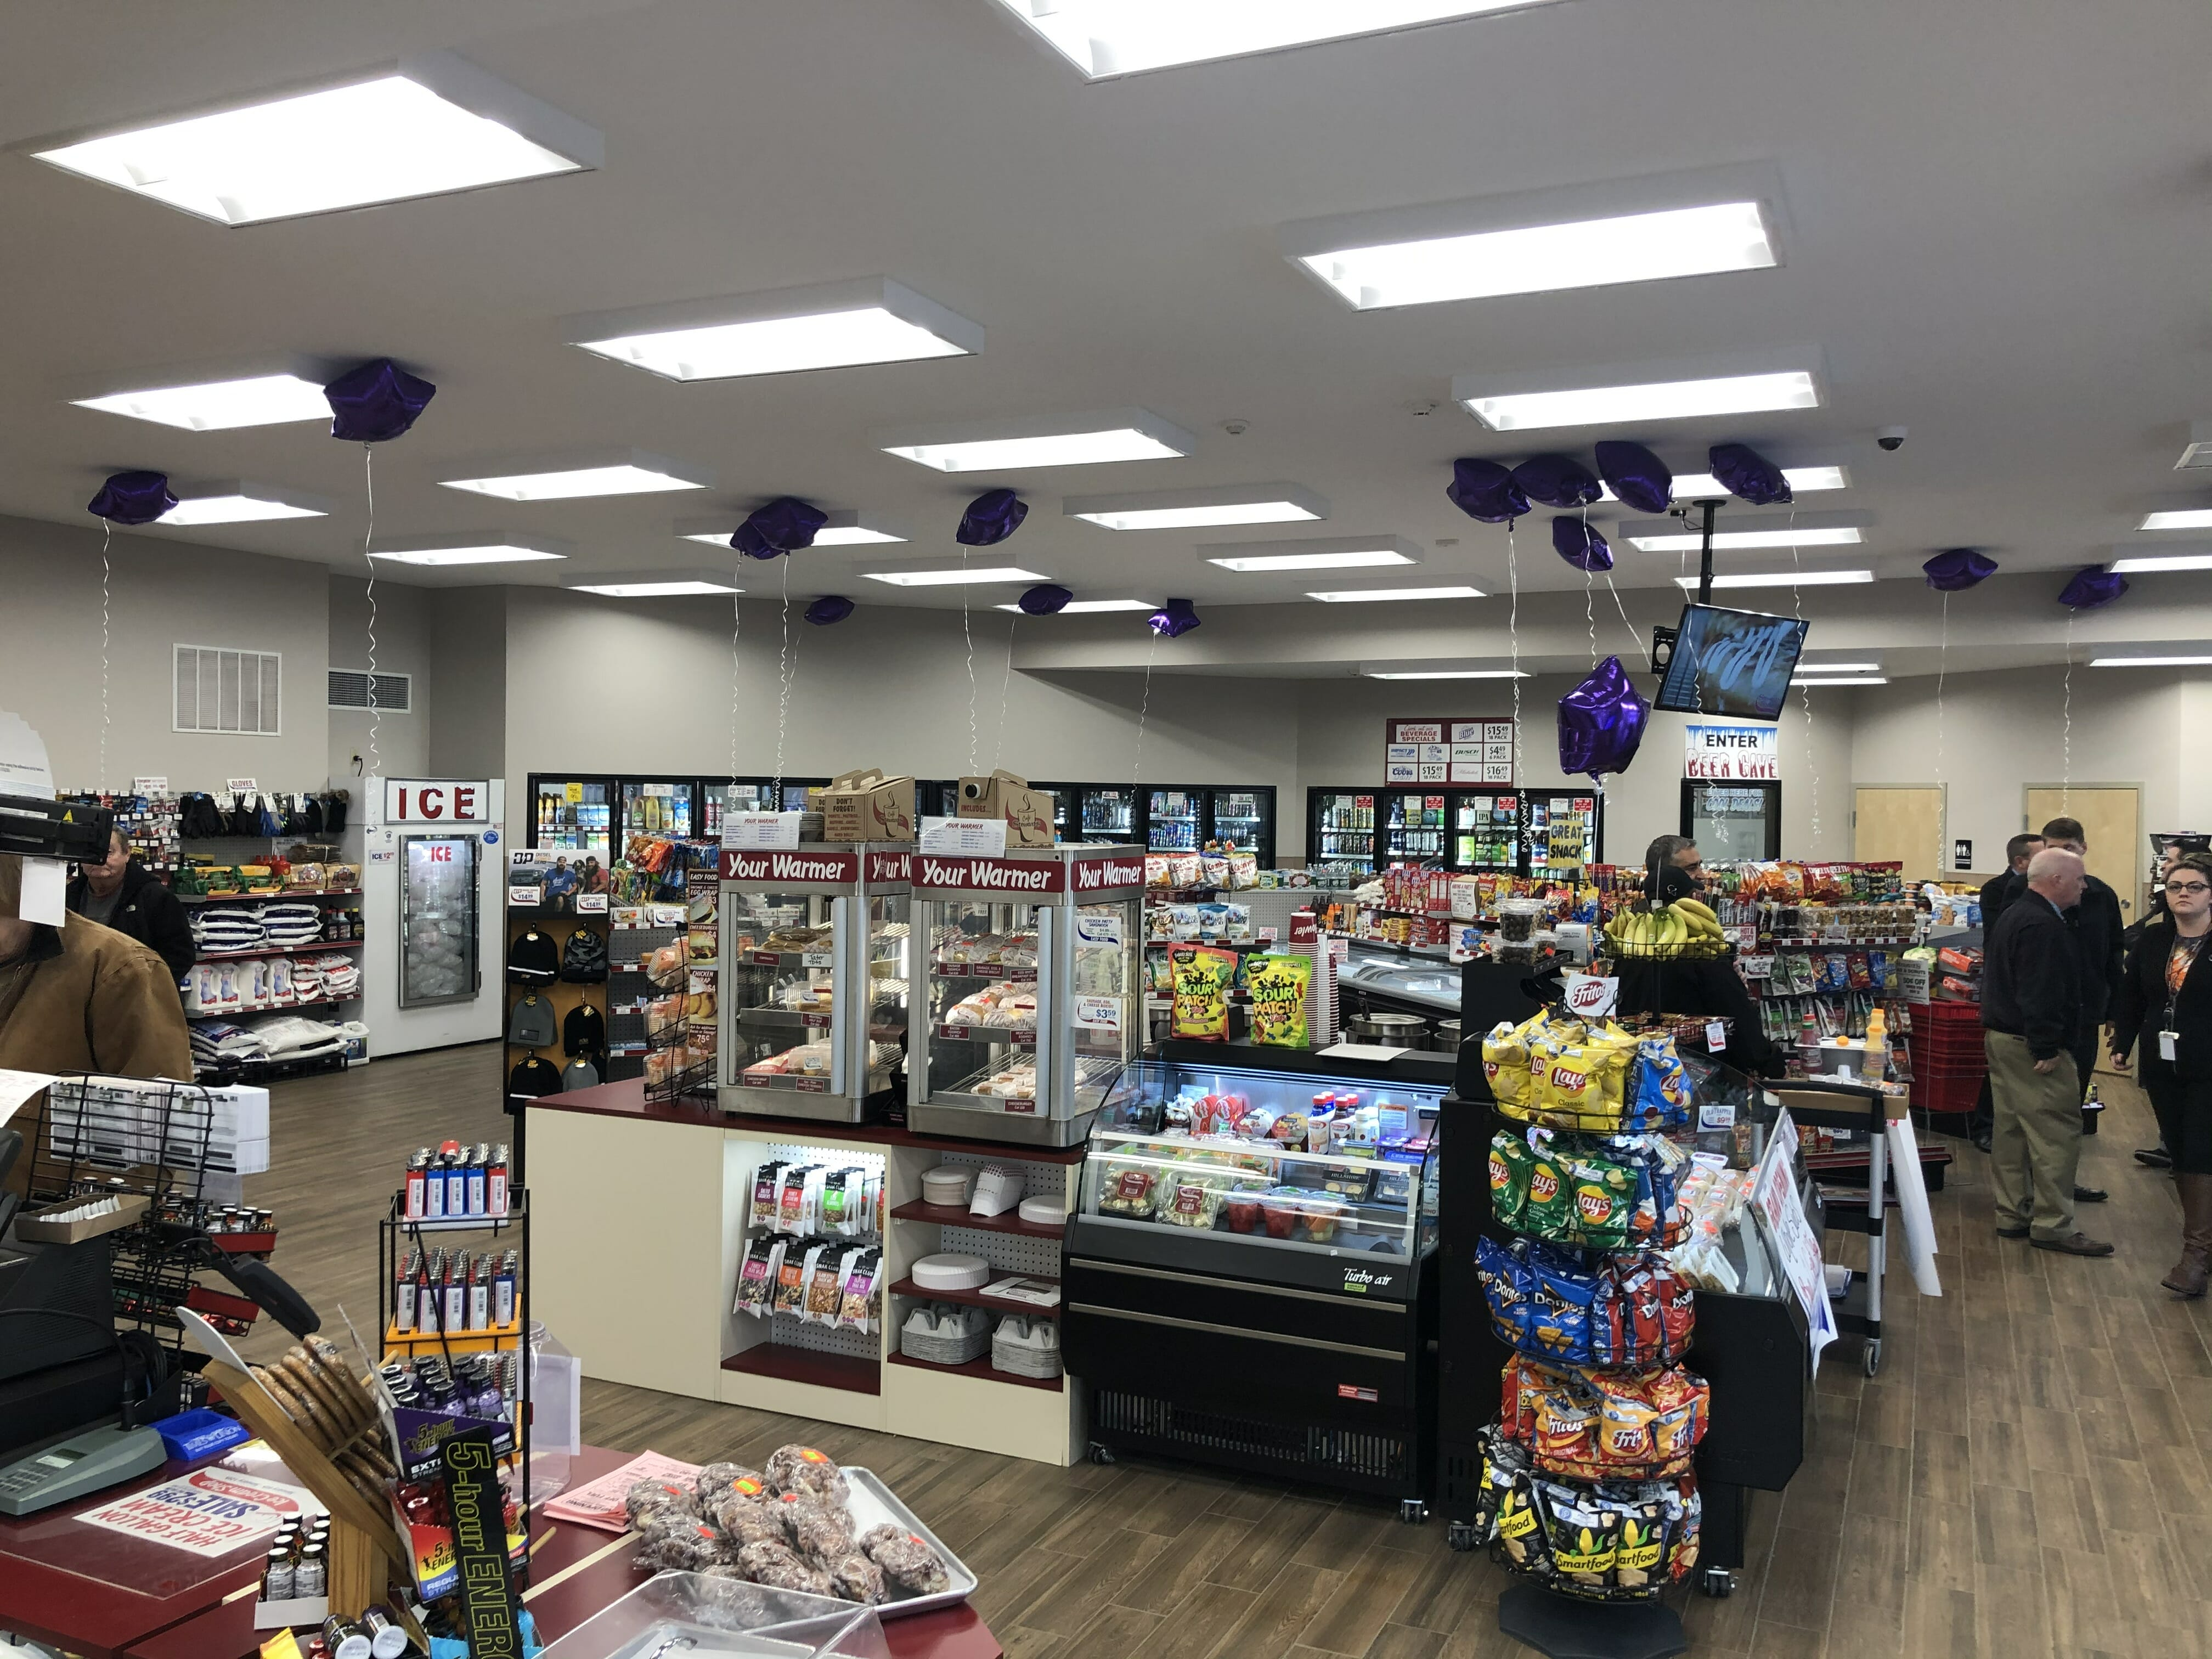 Inside the shop at the grand opening with balloons